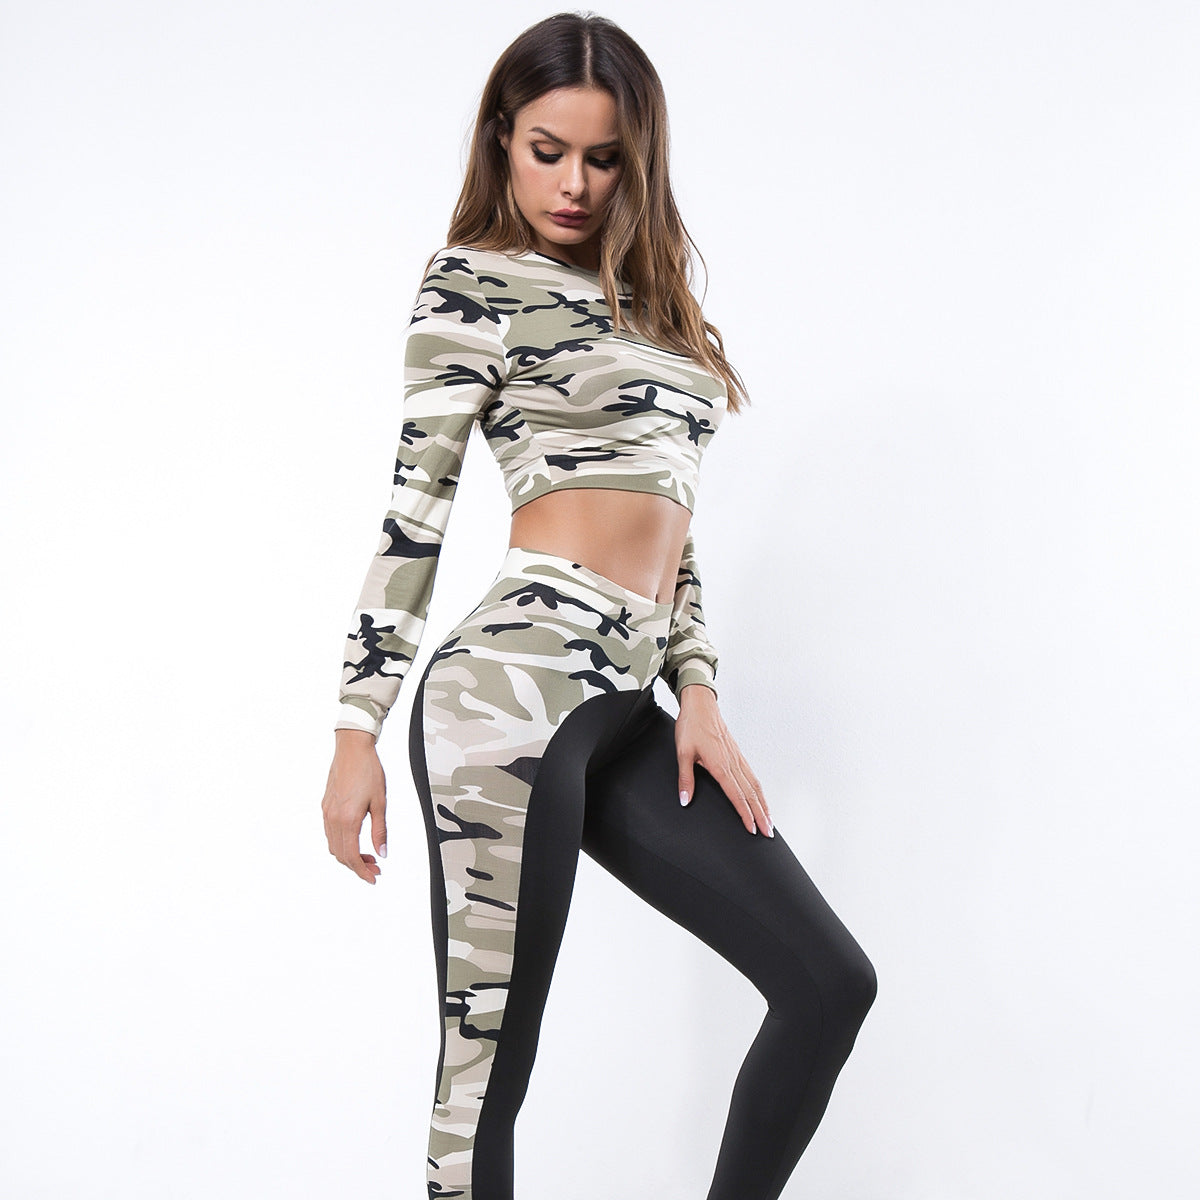 Sexy Camouflage Two Tone Gym Wort Out Sportswear Set